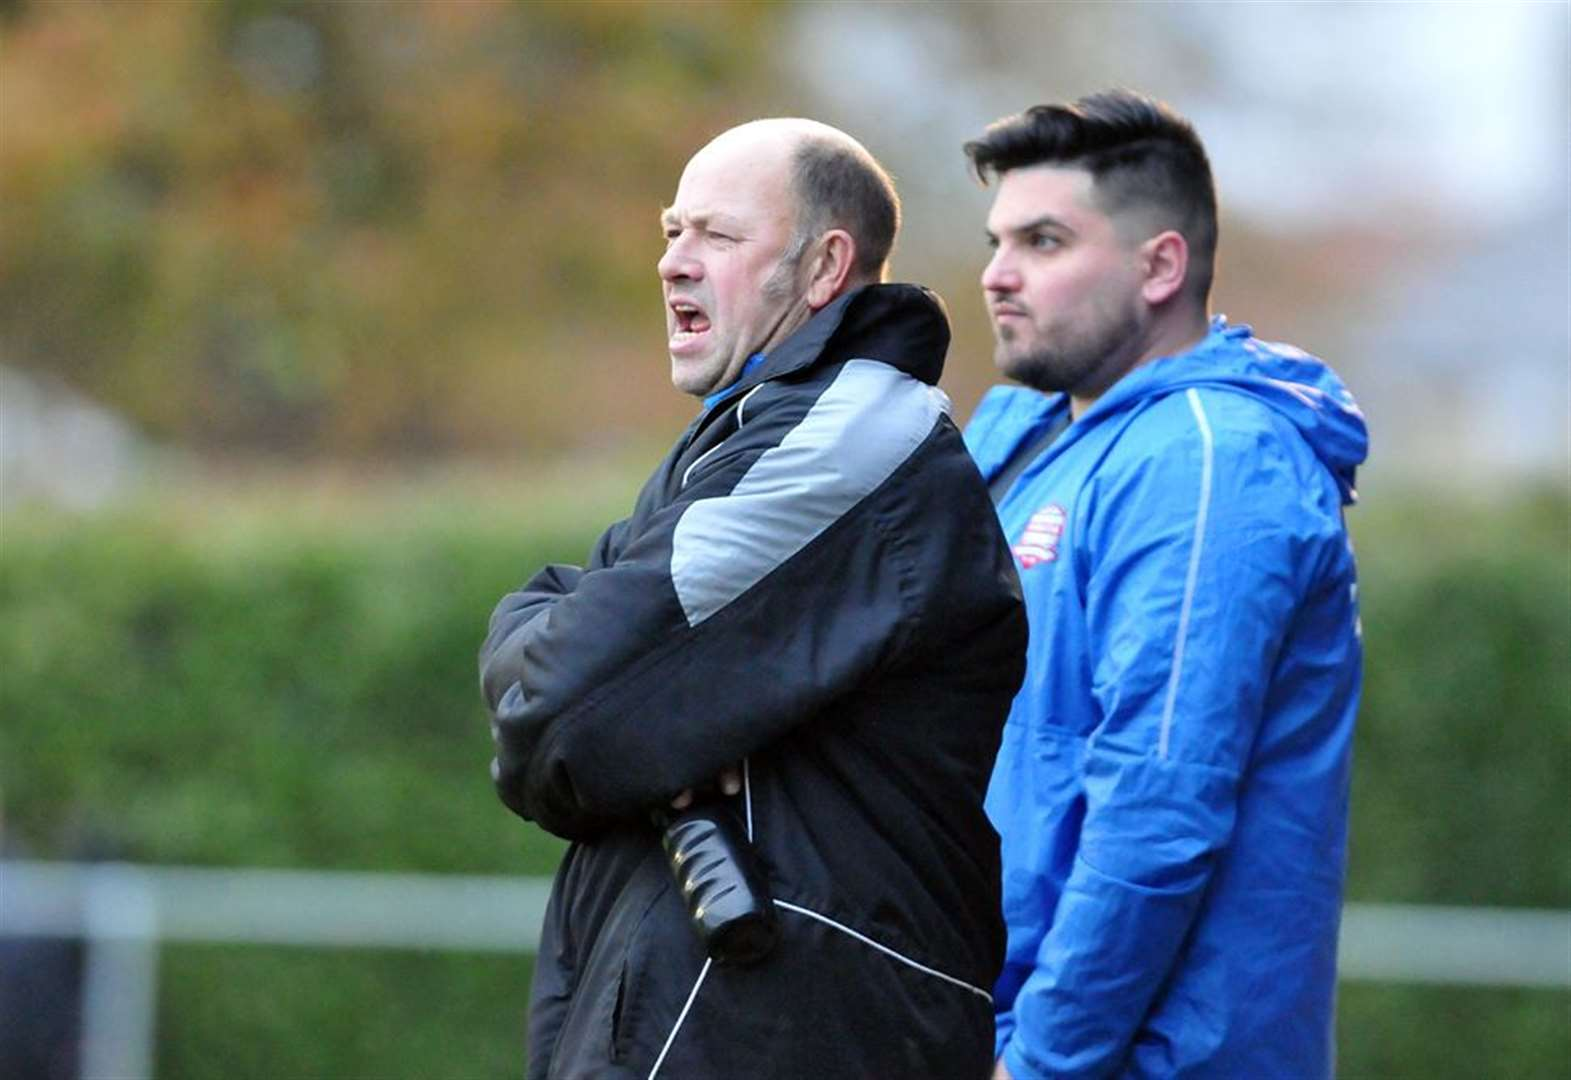 Massive match as Wakes aim to maintain upturn in form